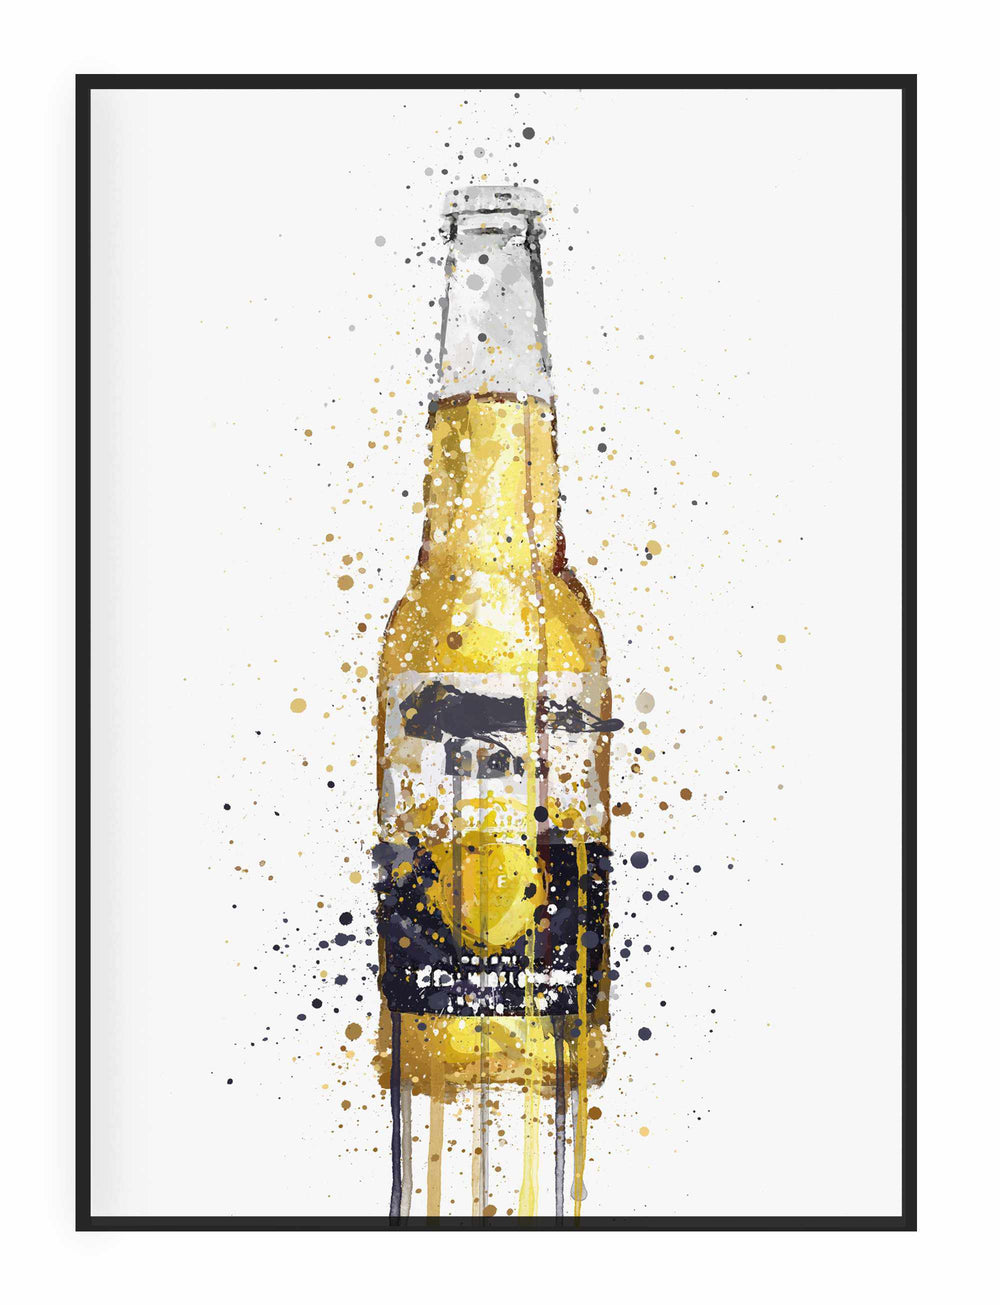 Beer Bottle Wall Art Print 'No Lime'